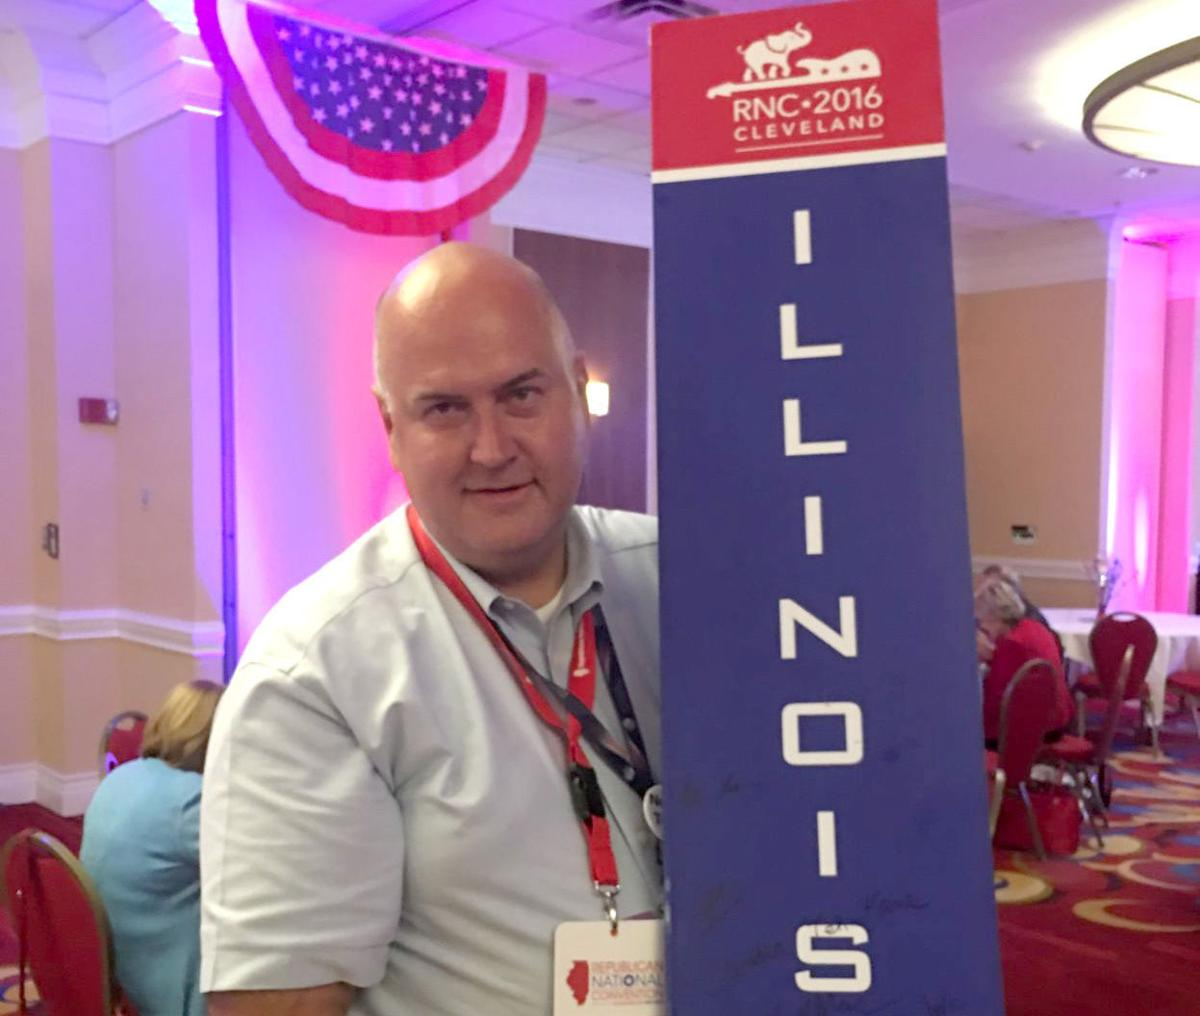 Gramm at Republican Convention 2016